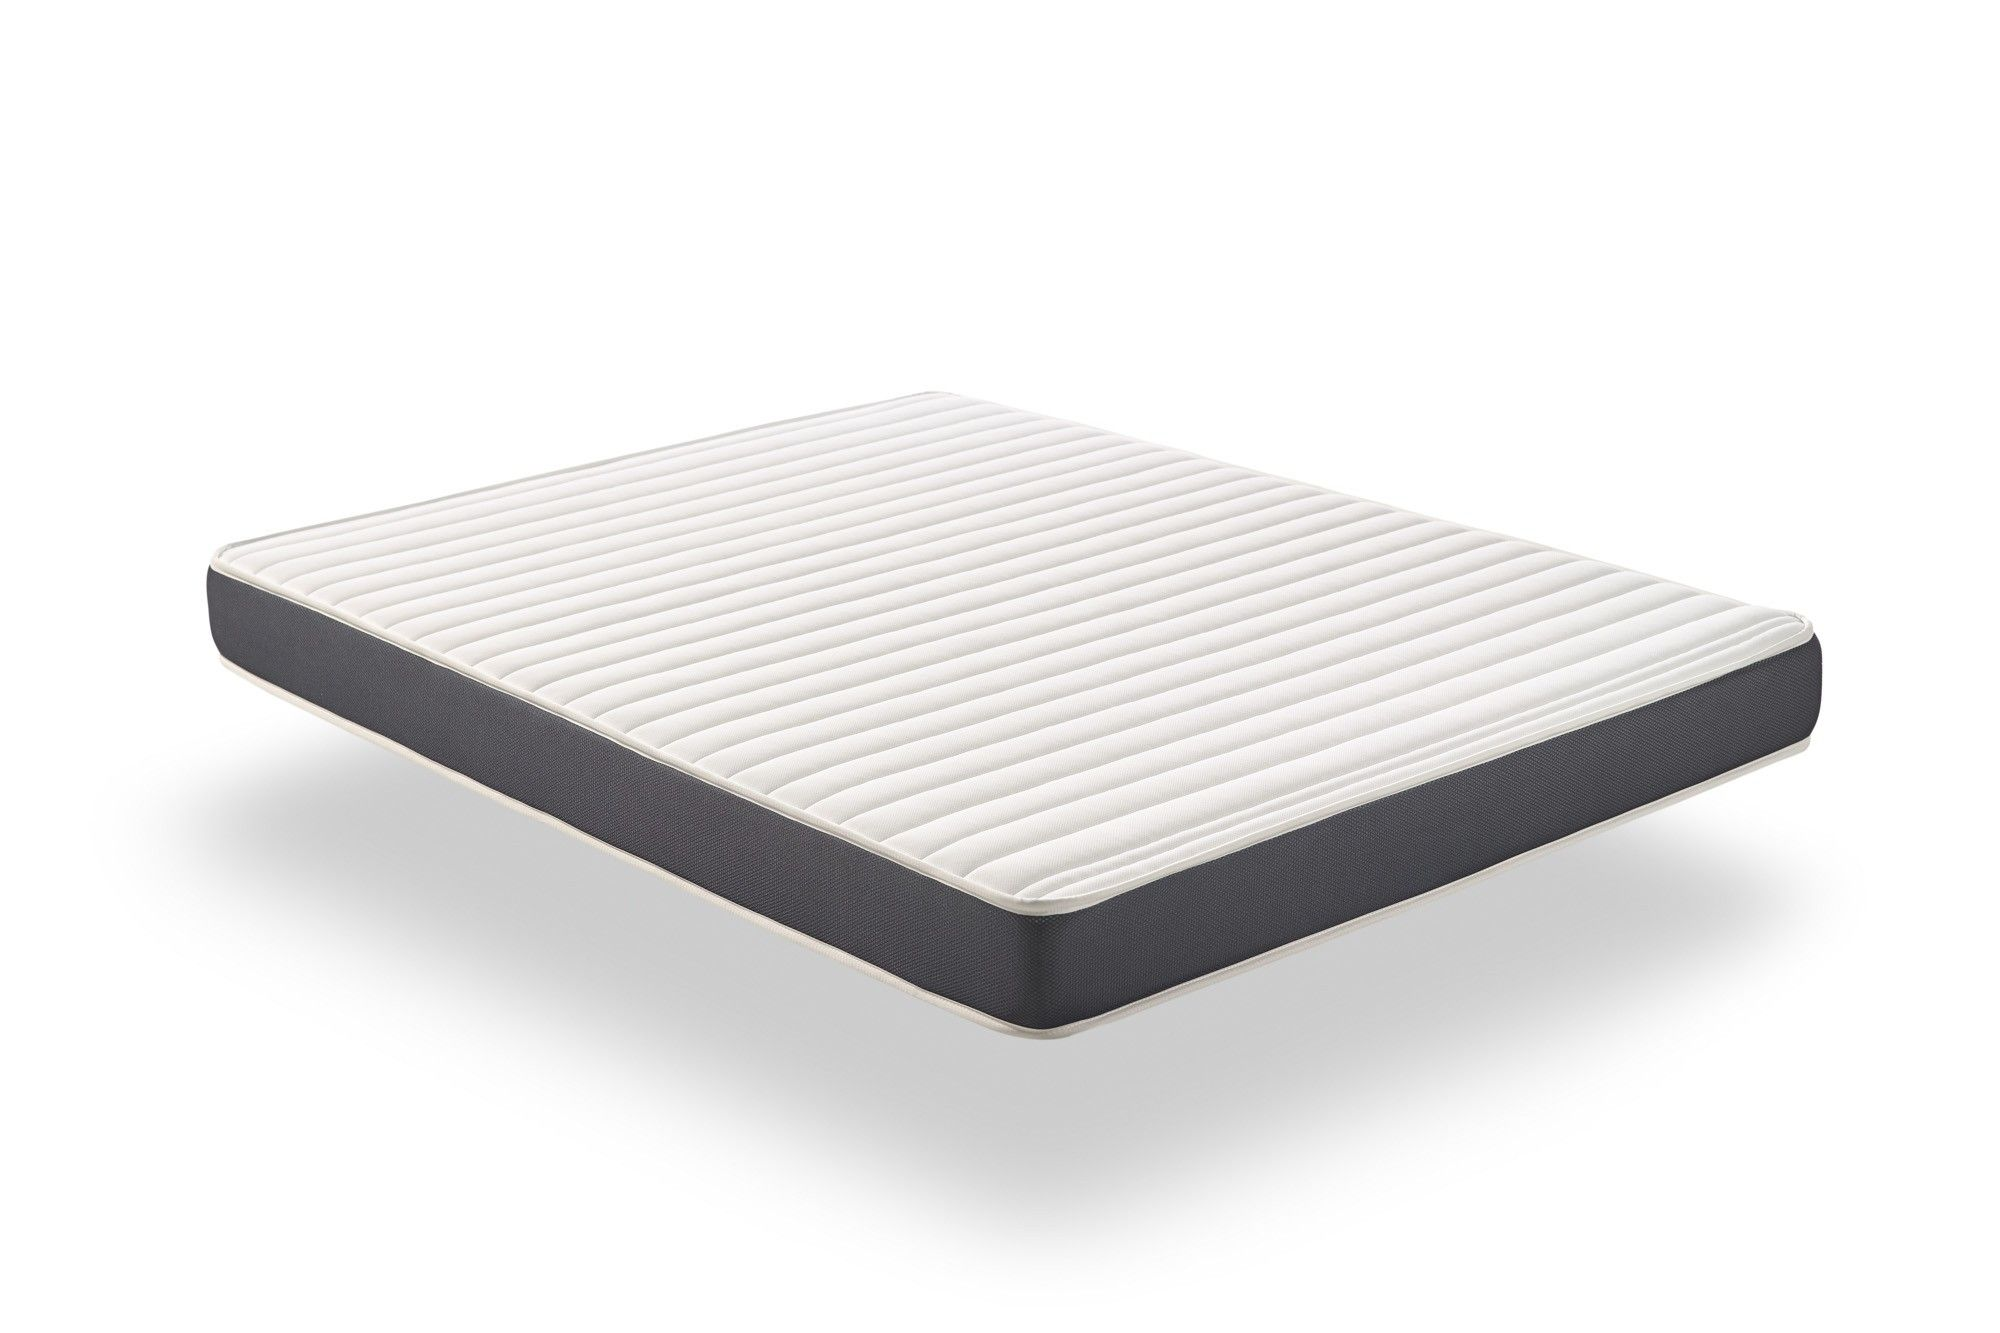 Winter side: Equipped with Airtex3D fabric providing a cooler welcome and better evacuating moisture and heat that can accumulate in the mattress.